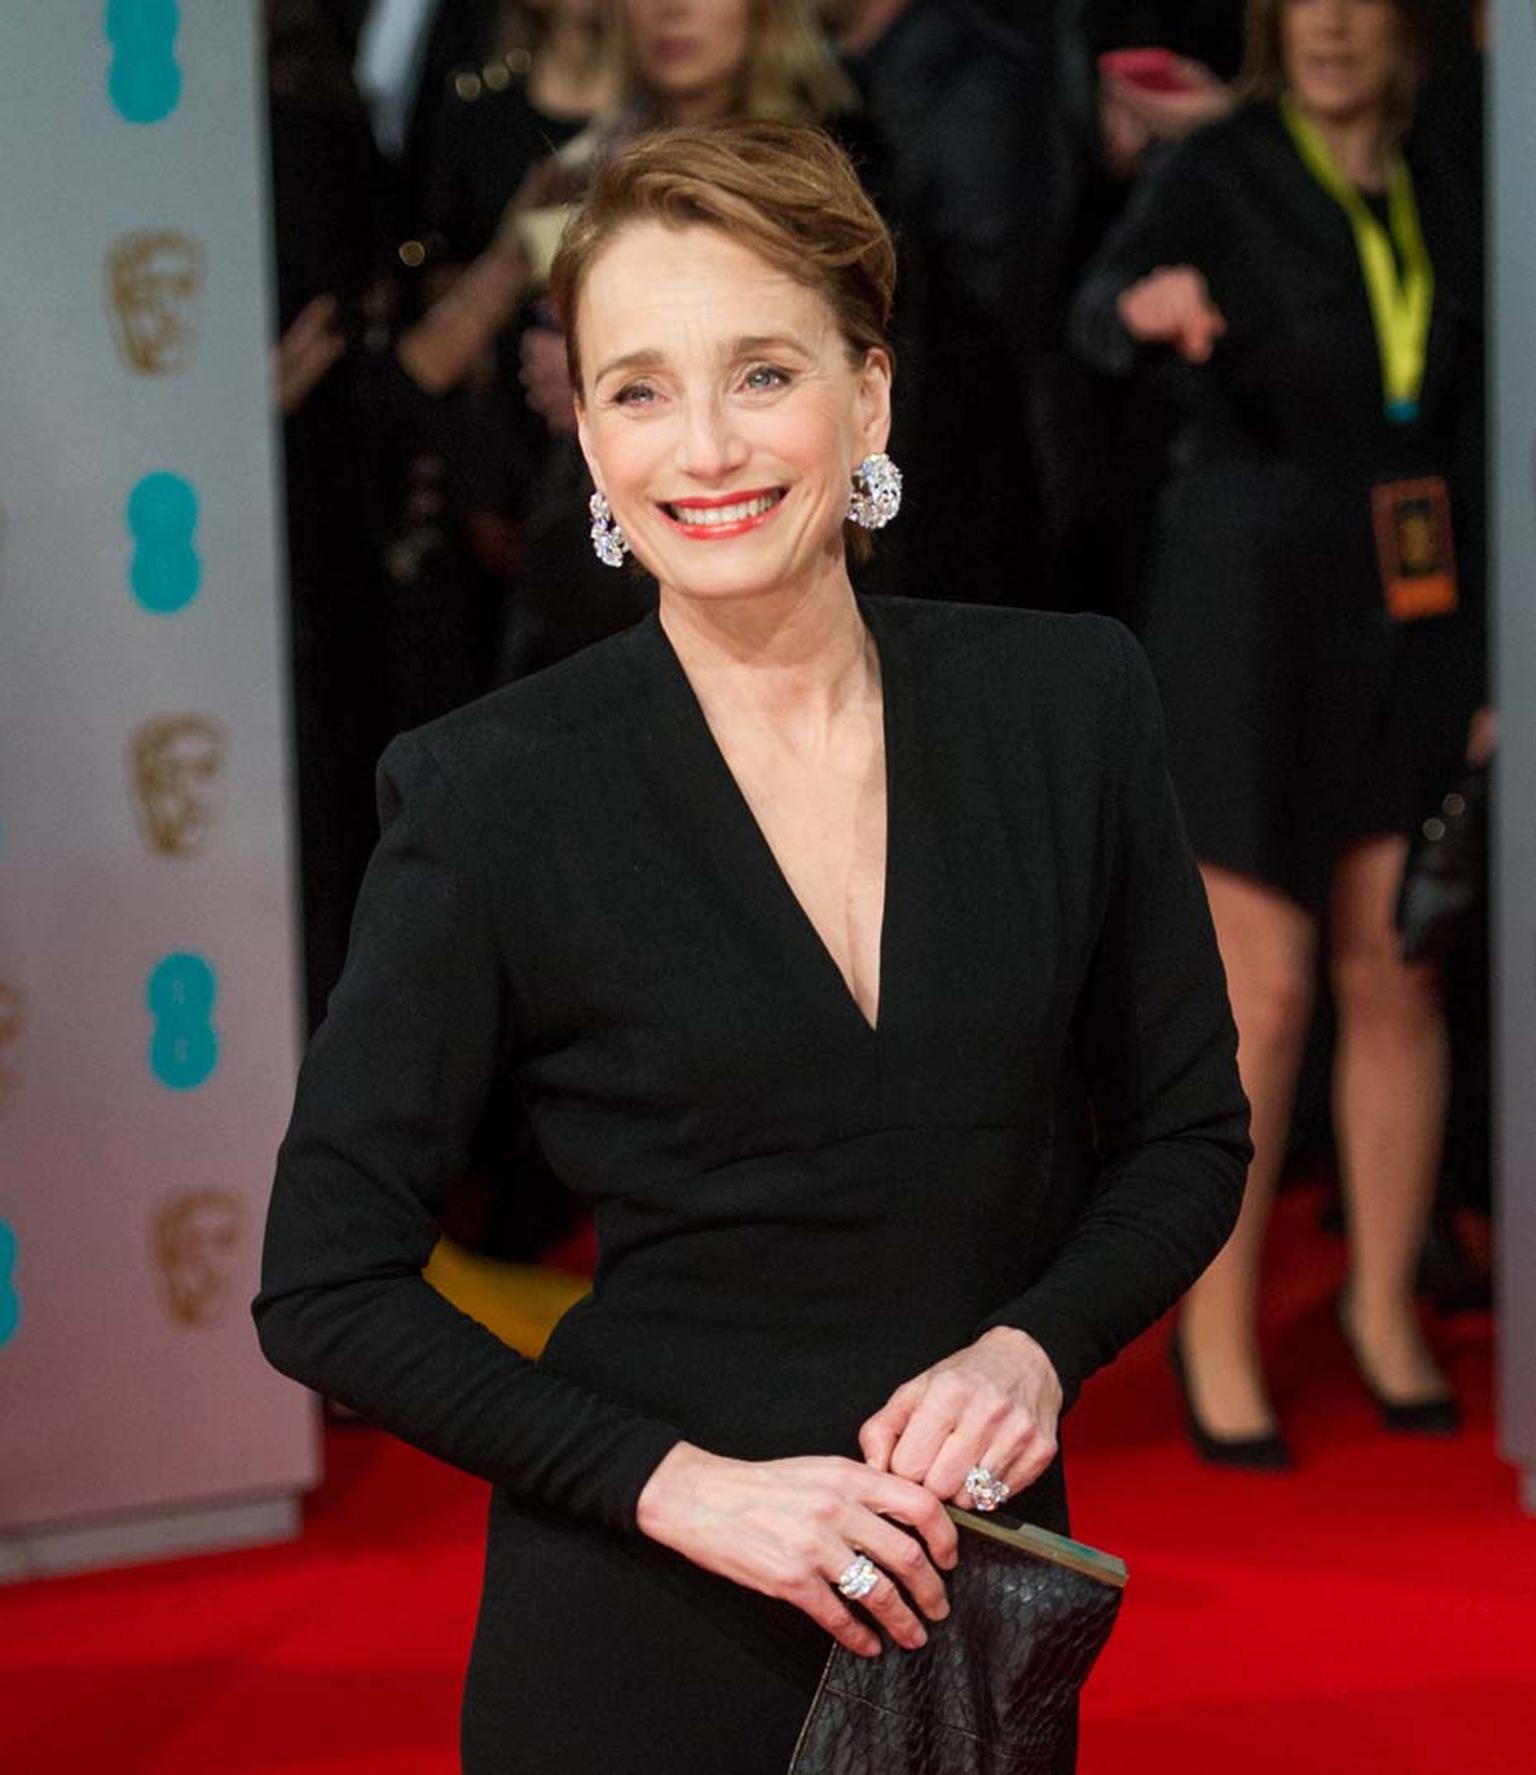 Dame Kristin Scott Thomas attended this year's BAFTA awards ceremony wearing a trio of pieces from Adler, including diamond earrings and an impressive Chameleon diamond ring.